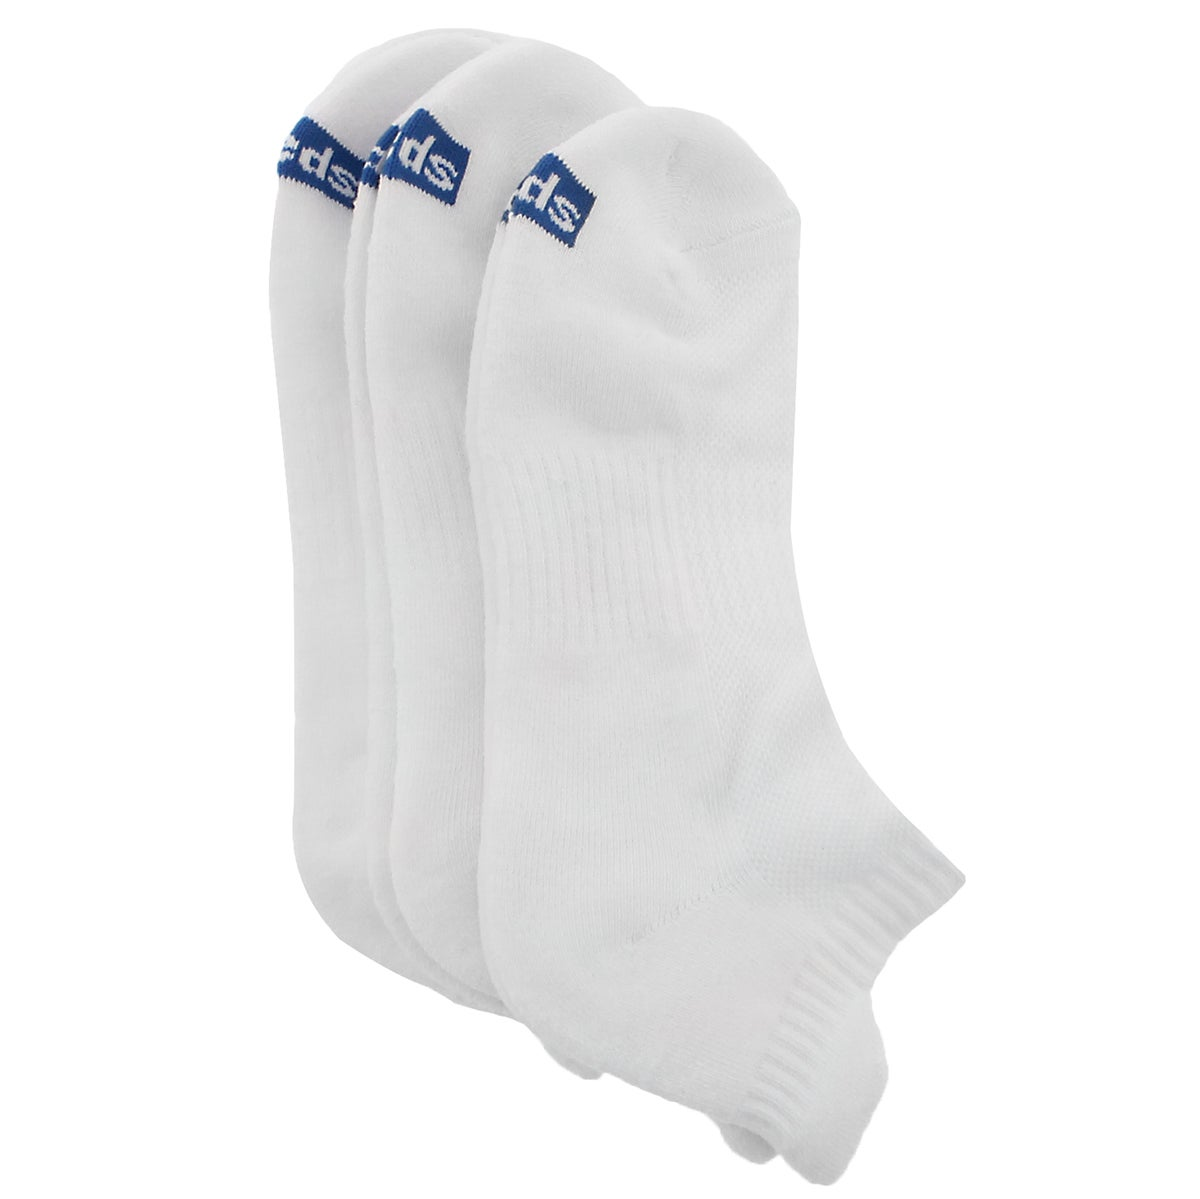 Lds Seasonless Core wht low sock - 3 pk